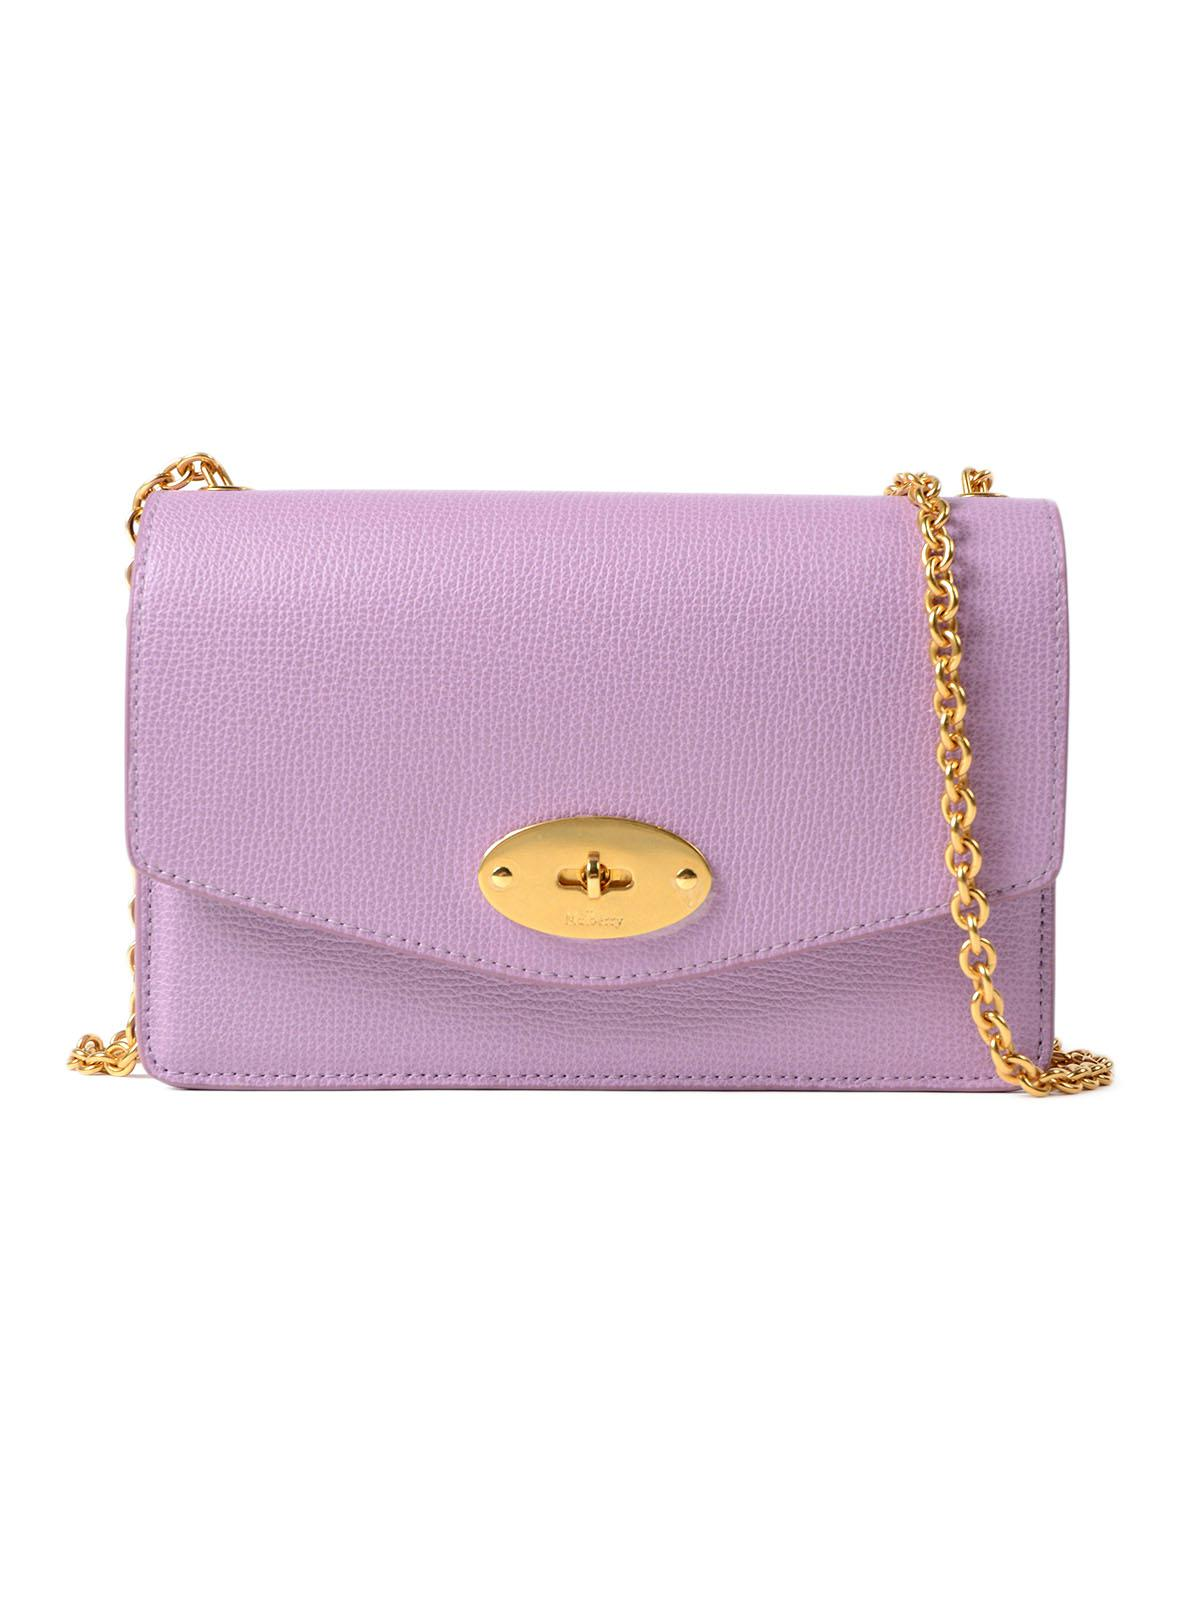 41771bd5229 Mulberry Small Darley Bag in Purple - Lyst